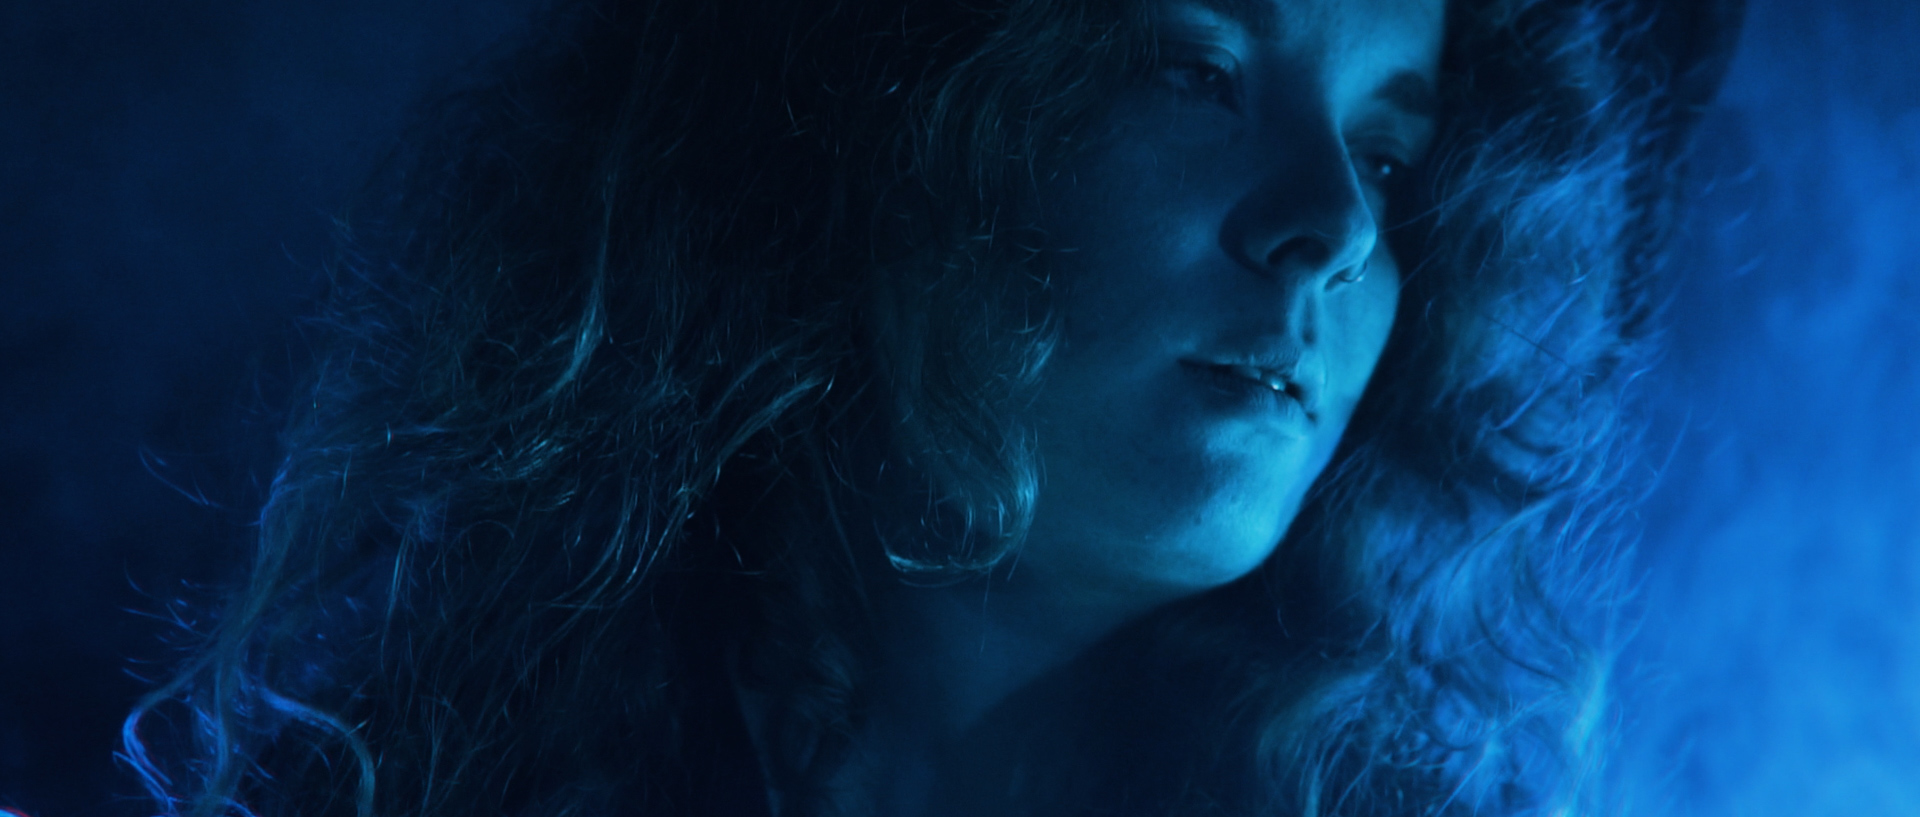 close up of a girl in blue light